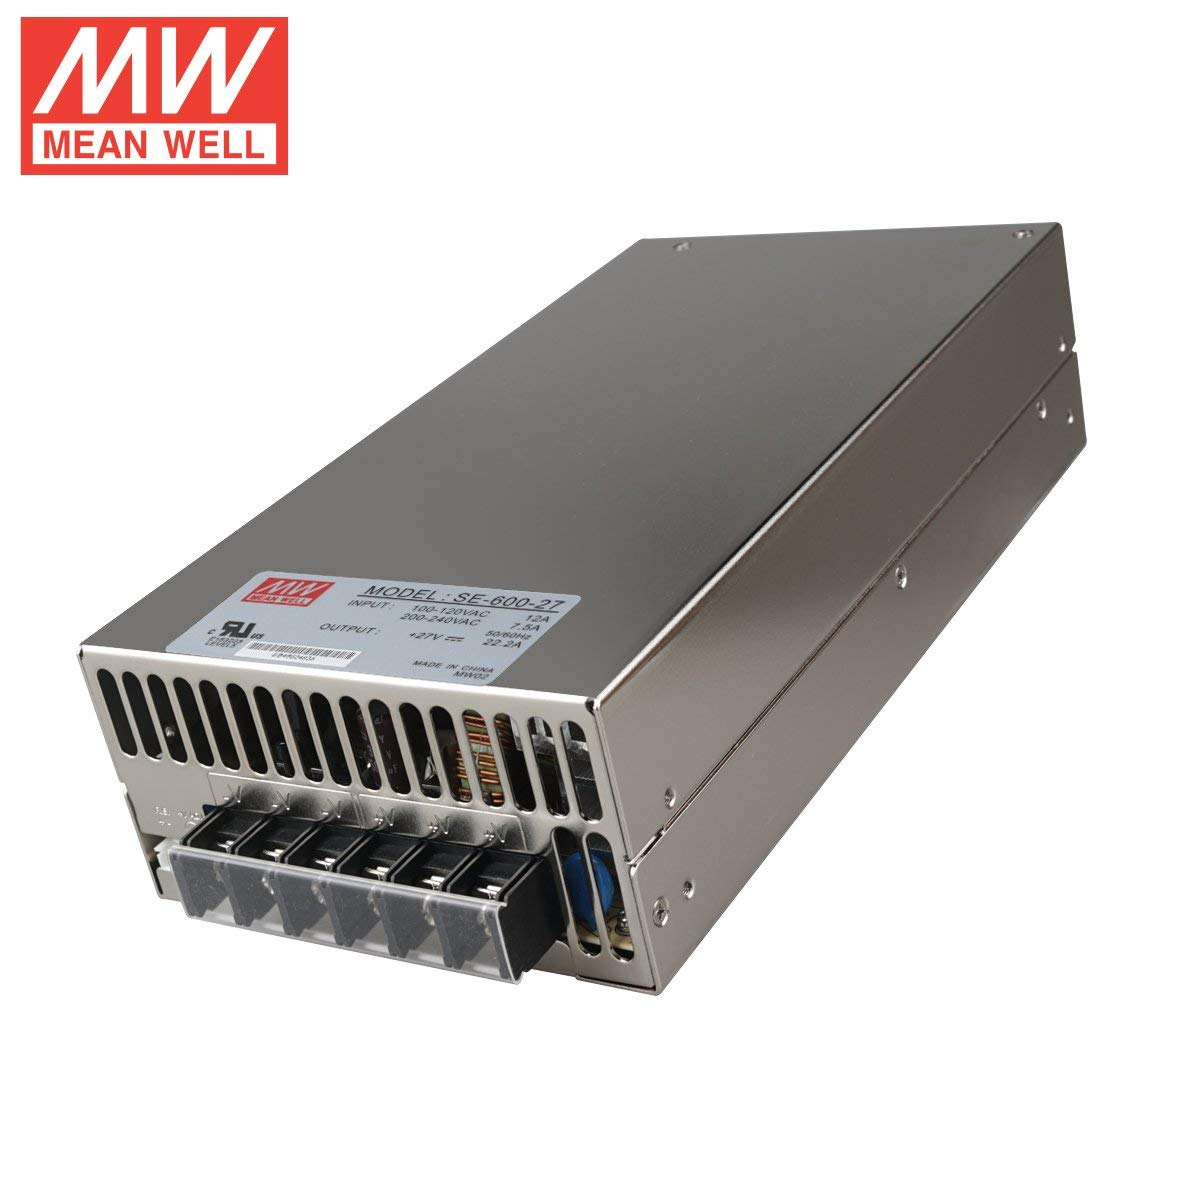 "Mean Well SE-600-27 Enclosed Switching AC-to-DC Power Supply, Single Output, 27V, 0-22.2A, 599.4W, 2.5"" H x 5.0"" W x 9.7"" L"